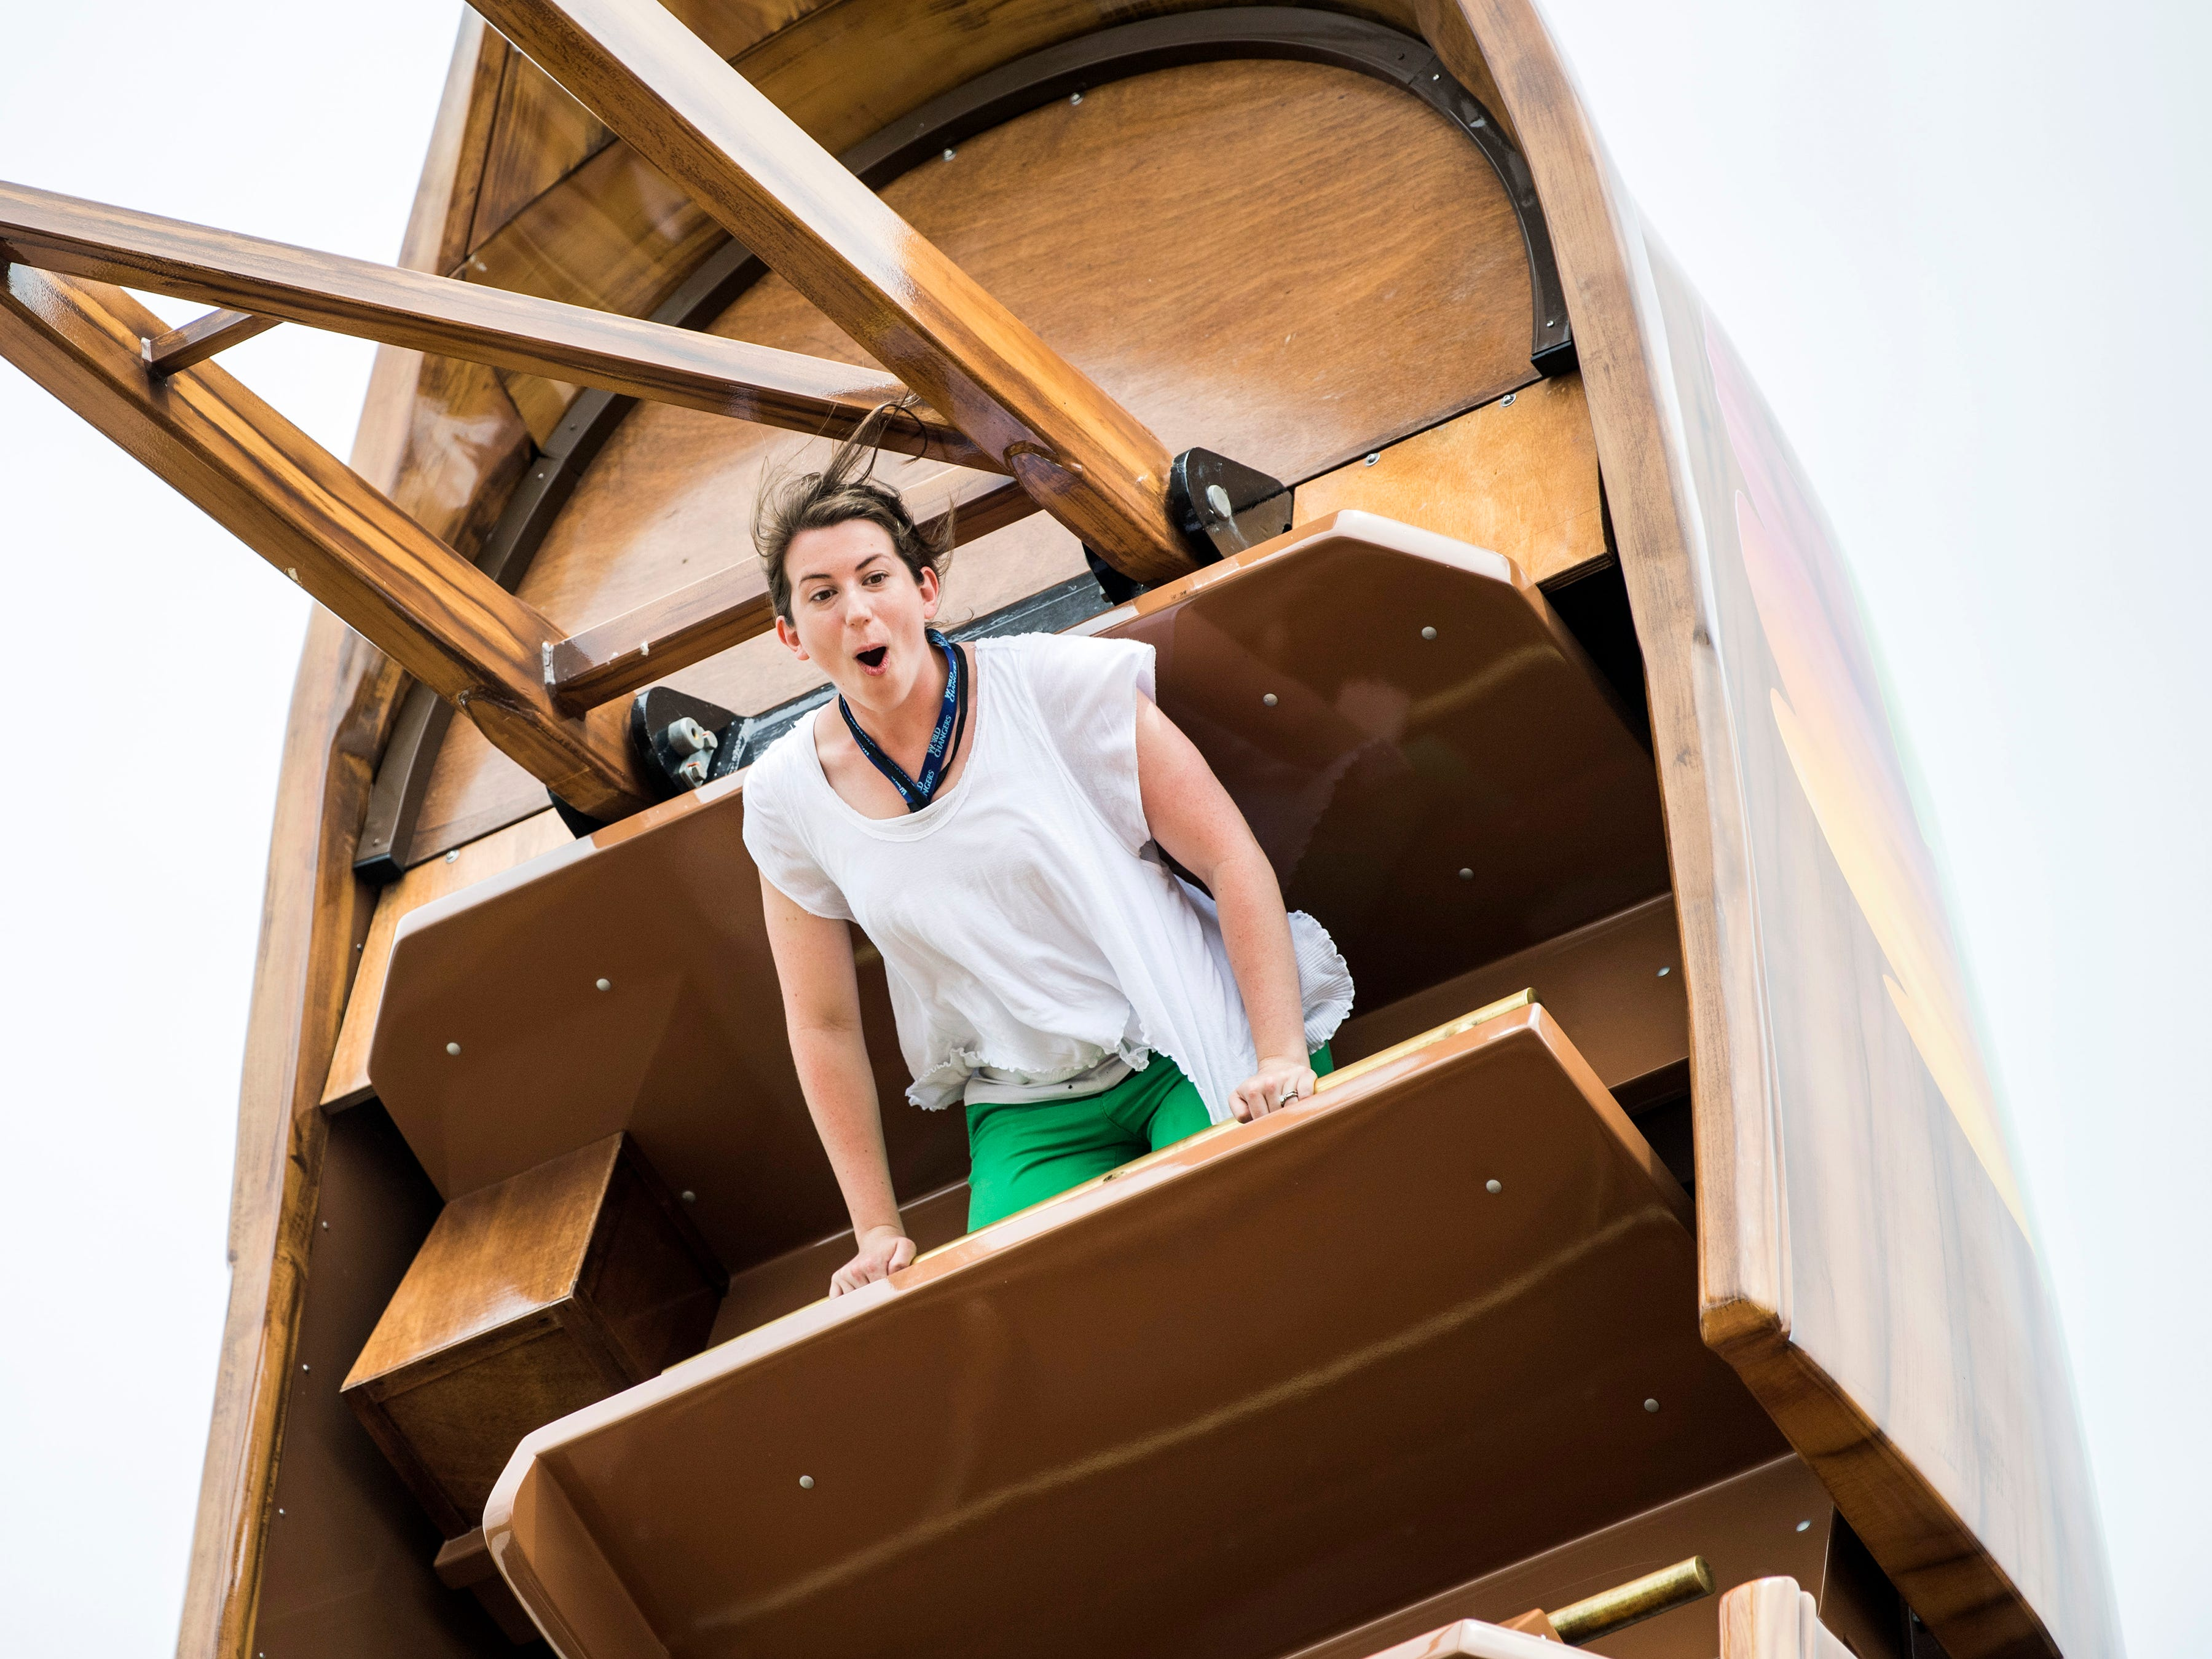 News Sentinel reporter Maggie Jones rides the Giant Tree Swing during the grand opening of Dollywood's new Wildwood Grove expansion on Friday, May 10, 2019.